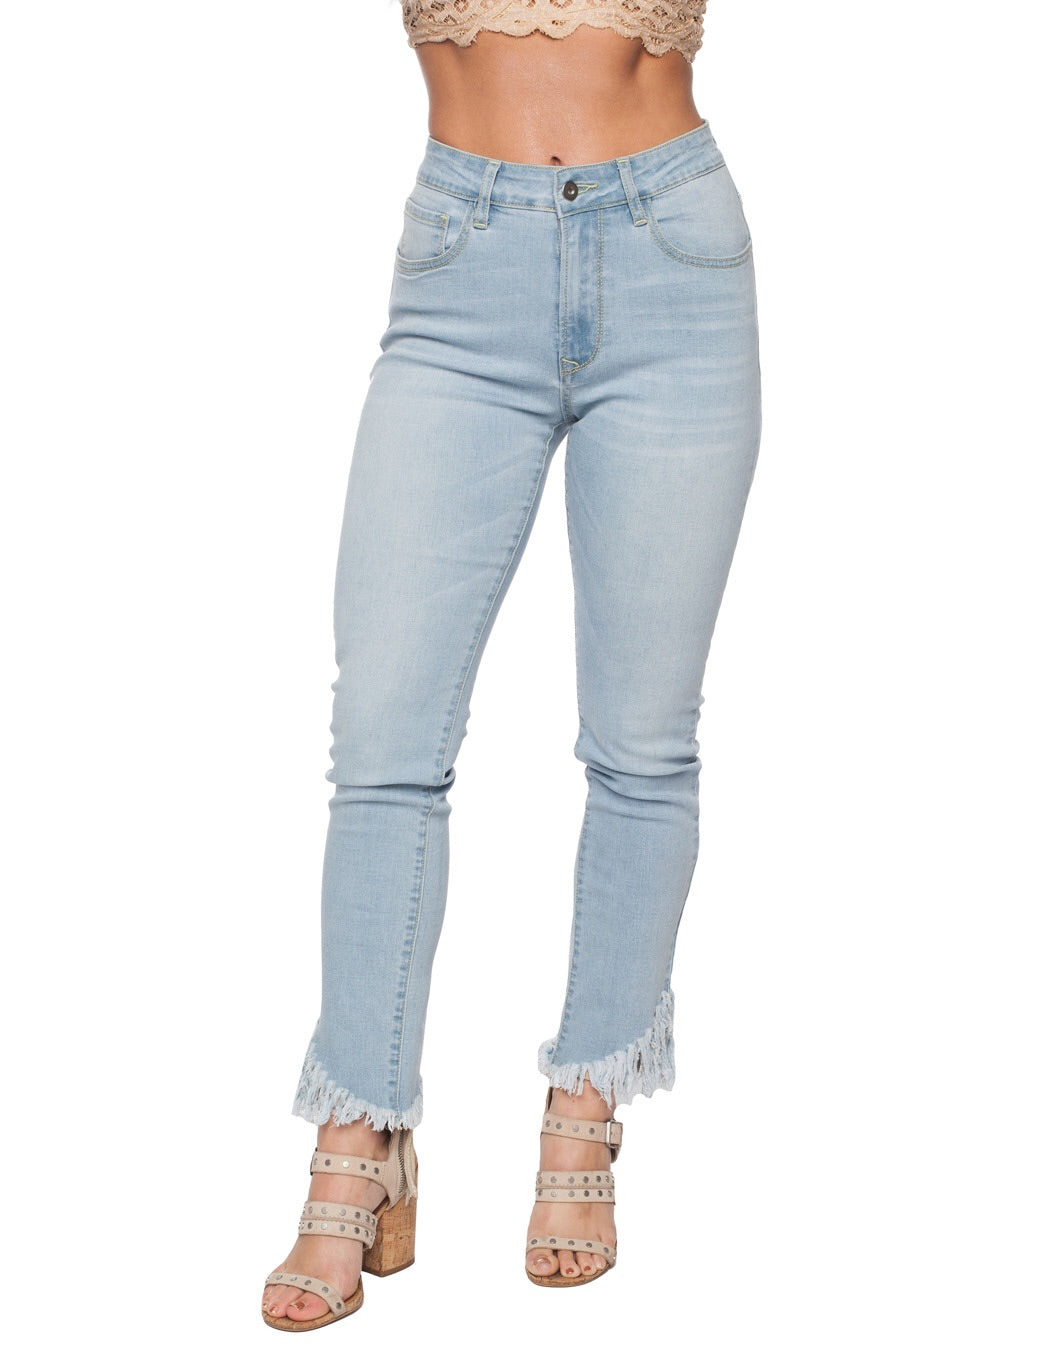 DUKE LIGHT WASH FRAYED DENIM